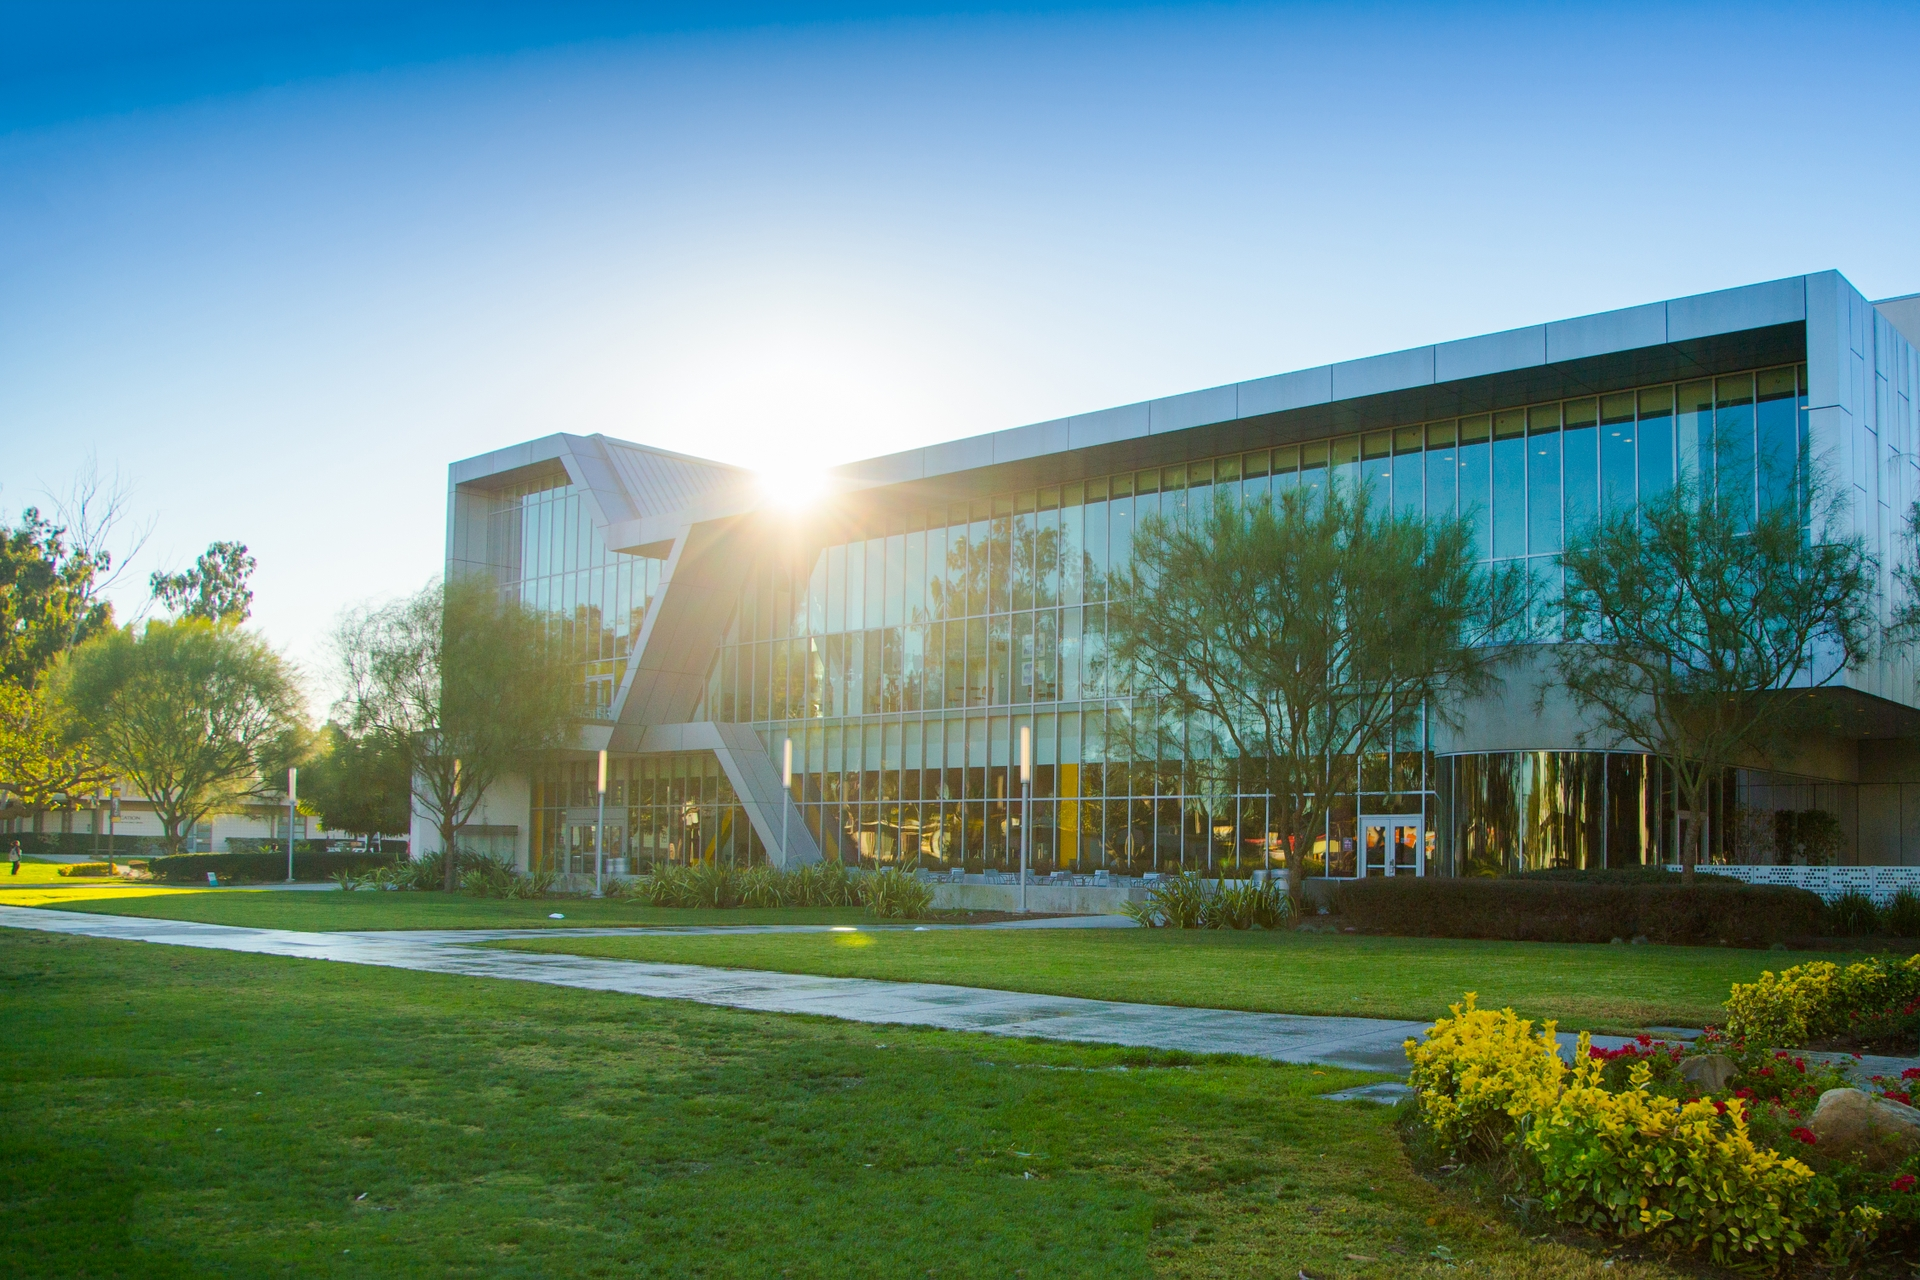 California State University Dominguez Hills has reduced its GHG emissions by 17.5% through projects it implemented through SCE's Clean Energy Optimization Pilot .